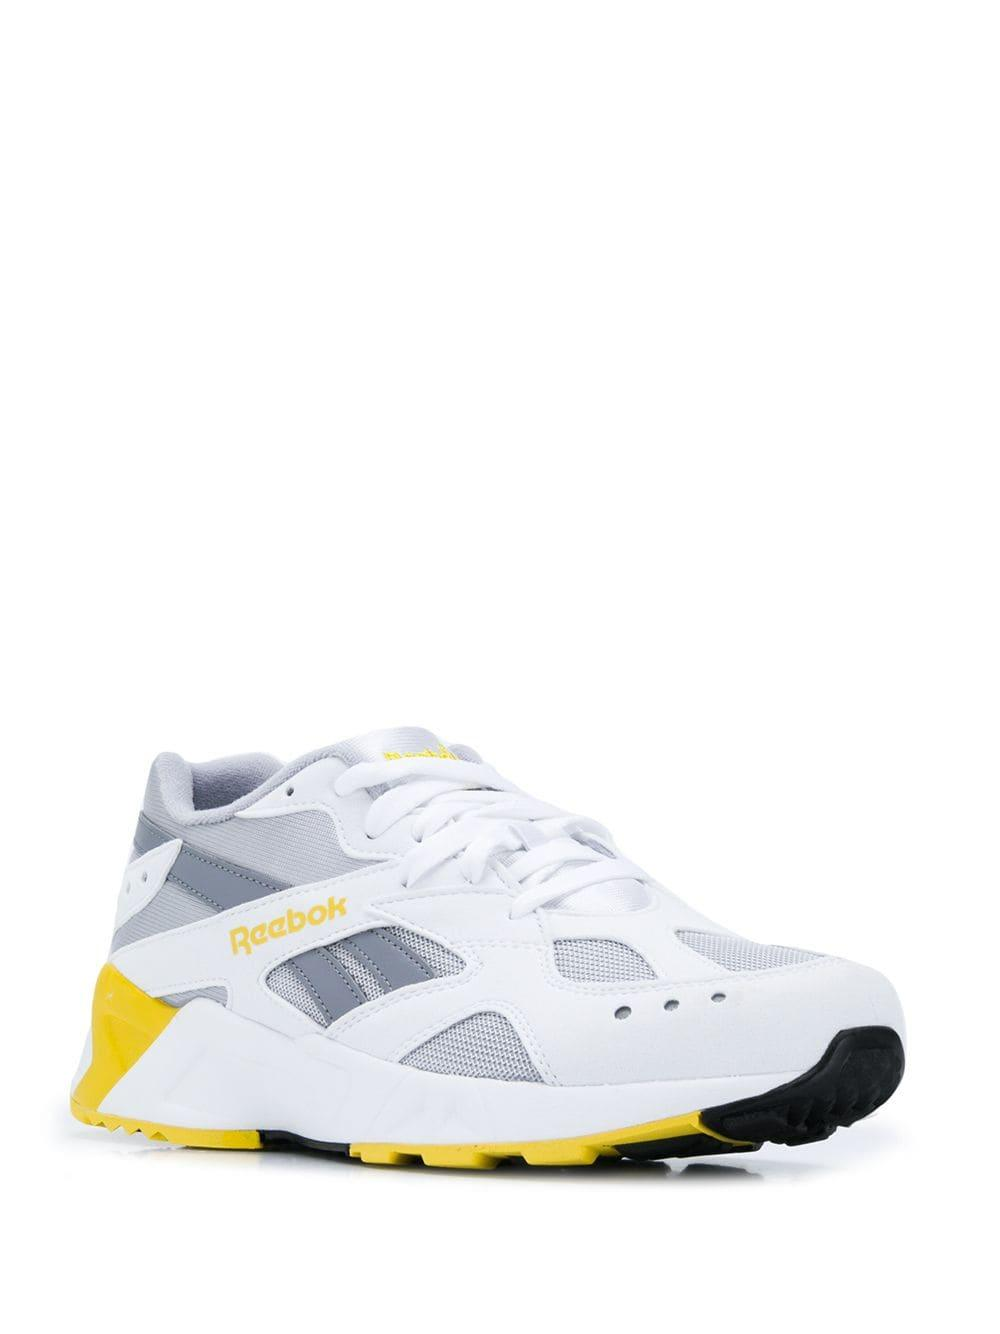 Reebok - White Aztrek Trainers for Men - Lyst. View fullscreen 4fda18780